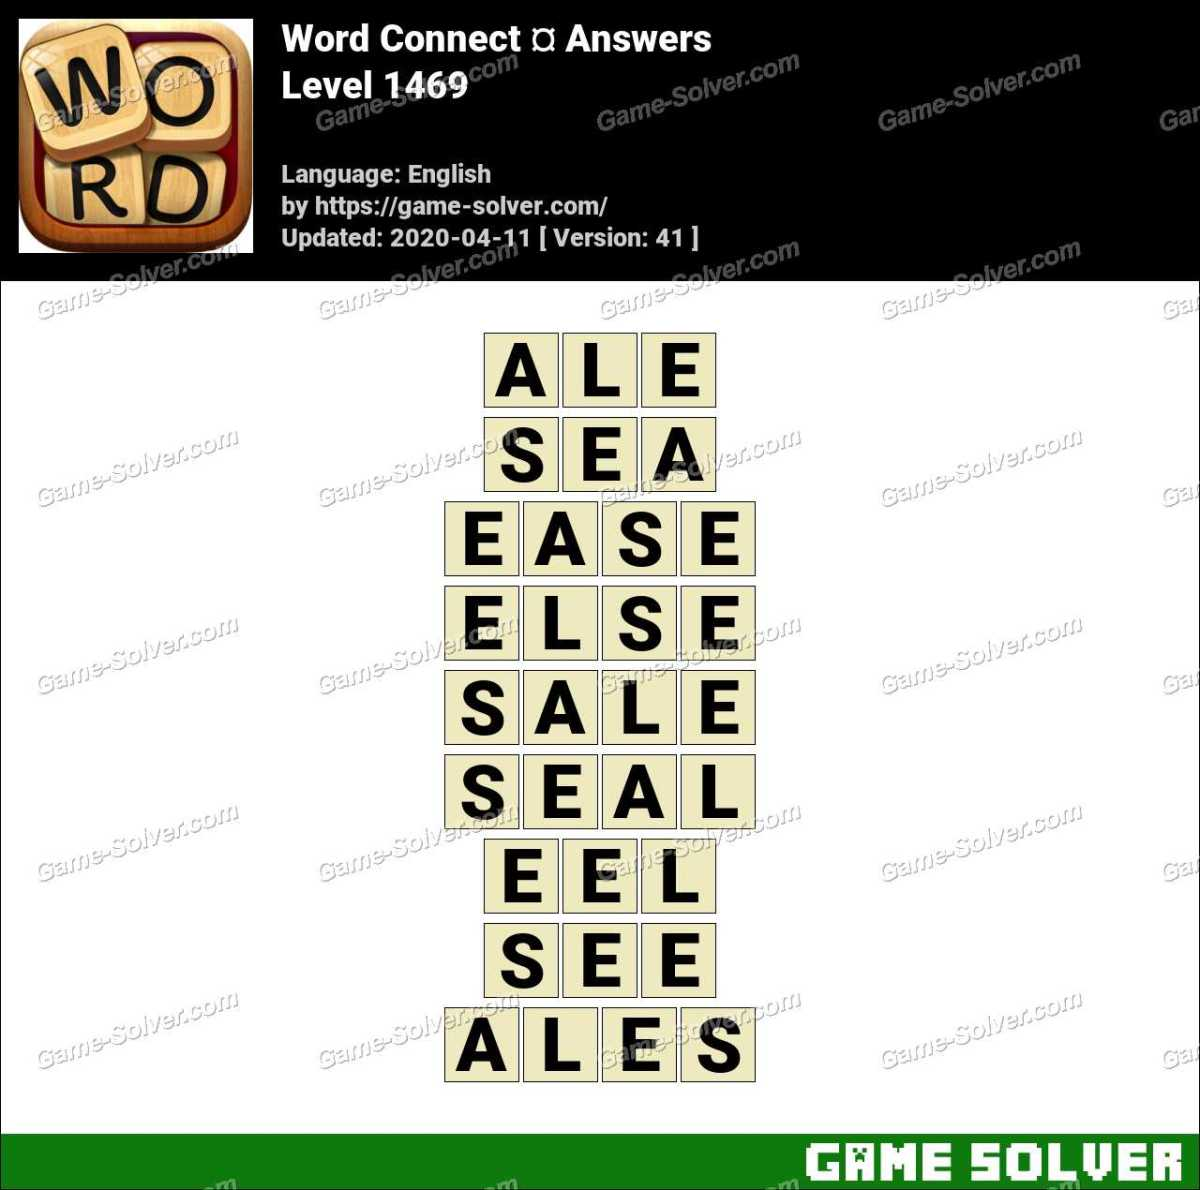 Word Connect Level 1469 Answers